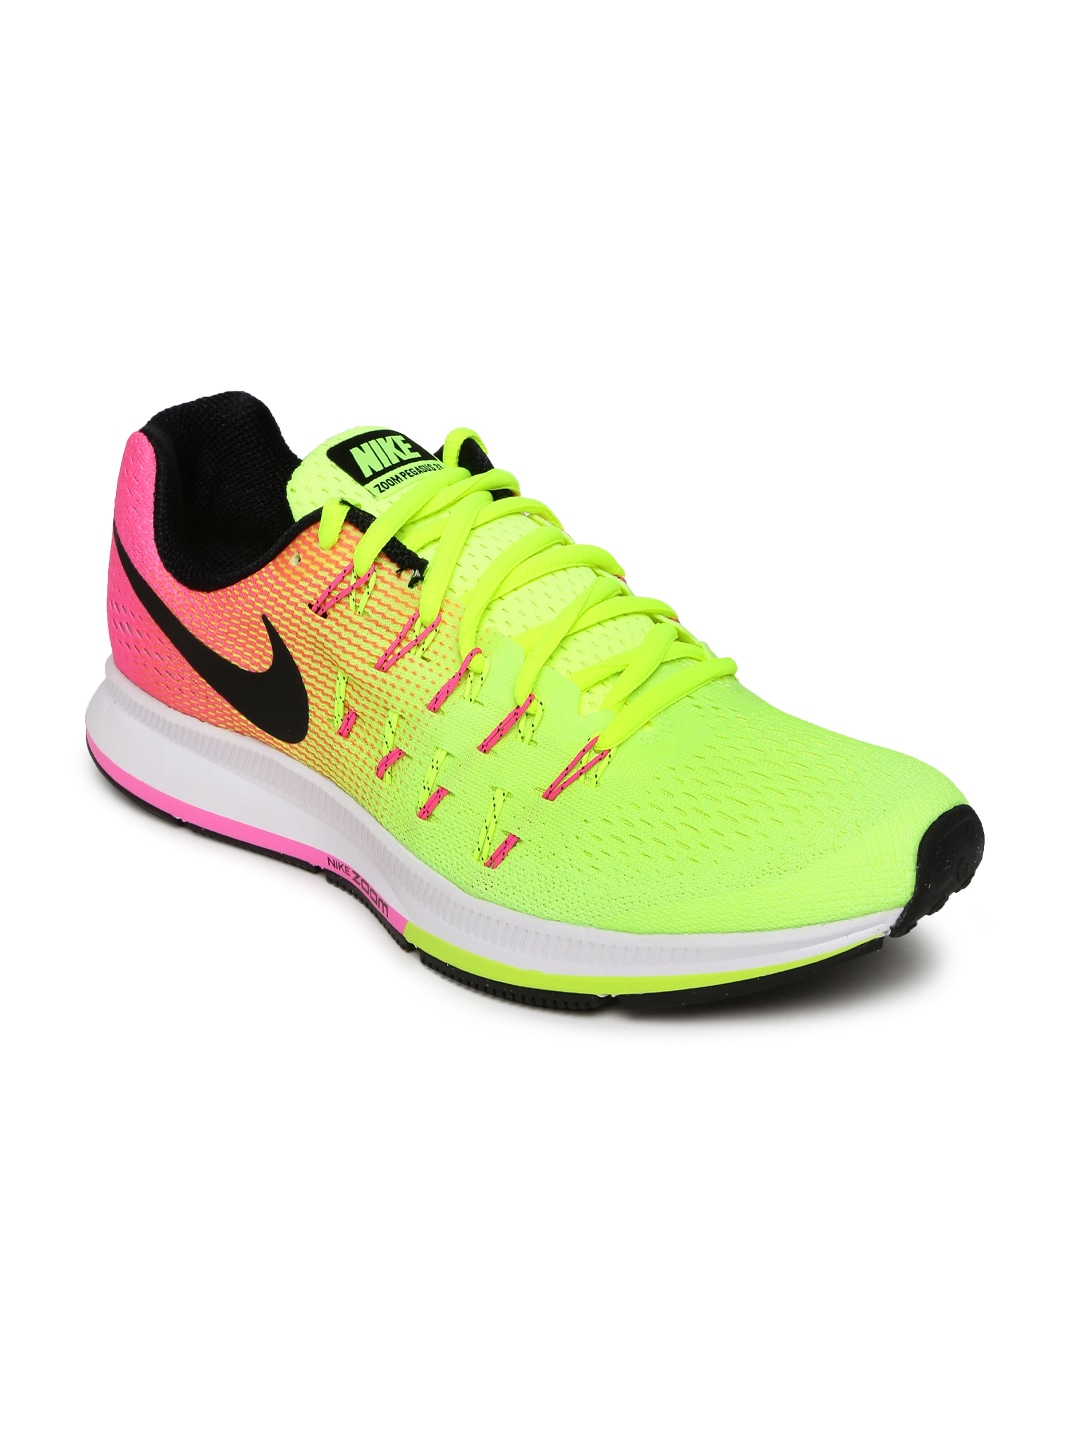 8b53e56a1593 11469173771717-Nike-Men -Fluorescent-Green--Pink-AIR-ZOOM-PEGASUS-33-OC-Running-Shoes-7881469173771458-1.jpg